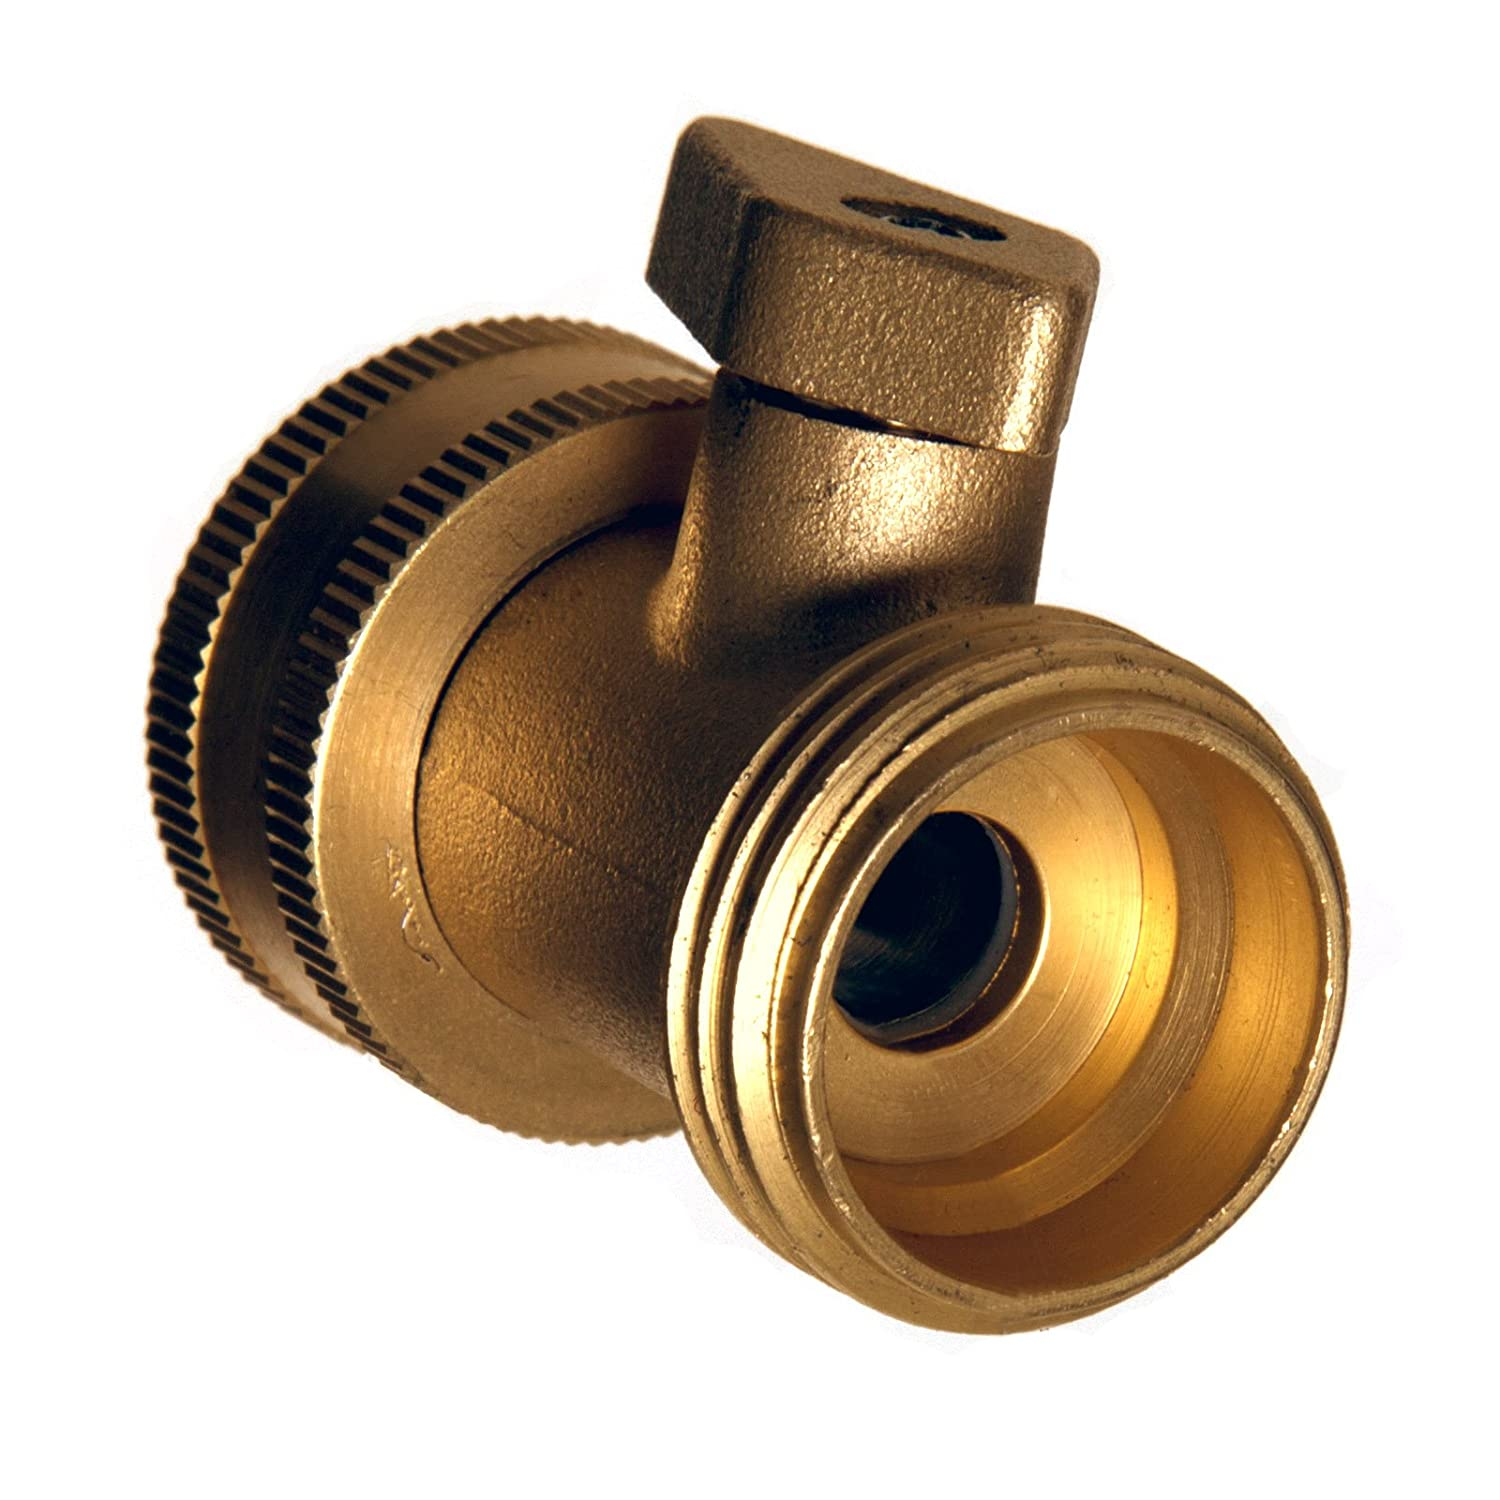 Amazon.com : MINTCRAFT GB9111A3L Brass Garden Hose Shut Off : Garden ...